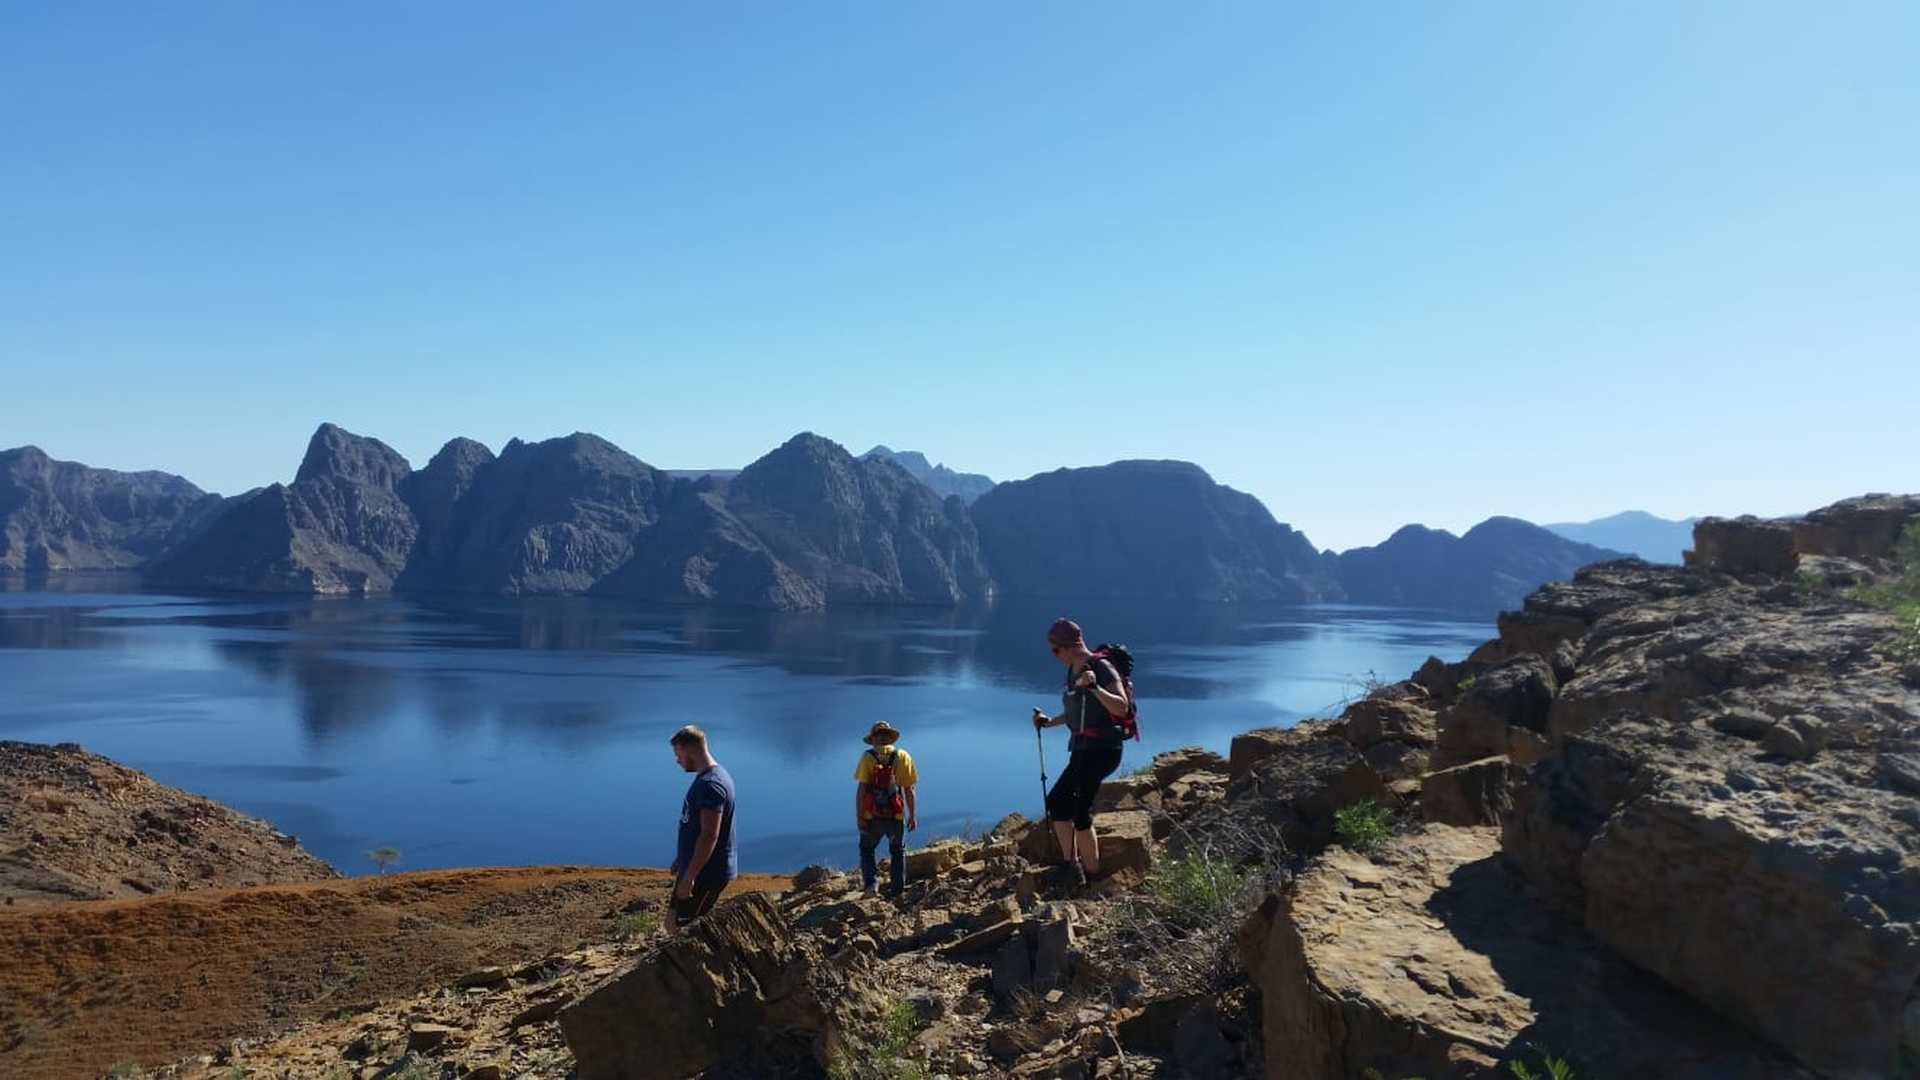 Hikers in the Musandam fjords